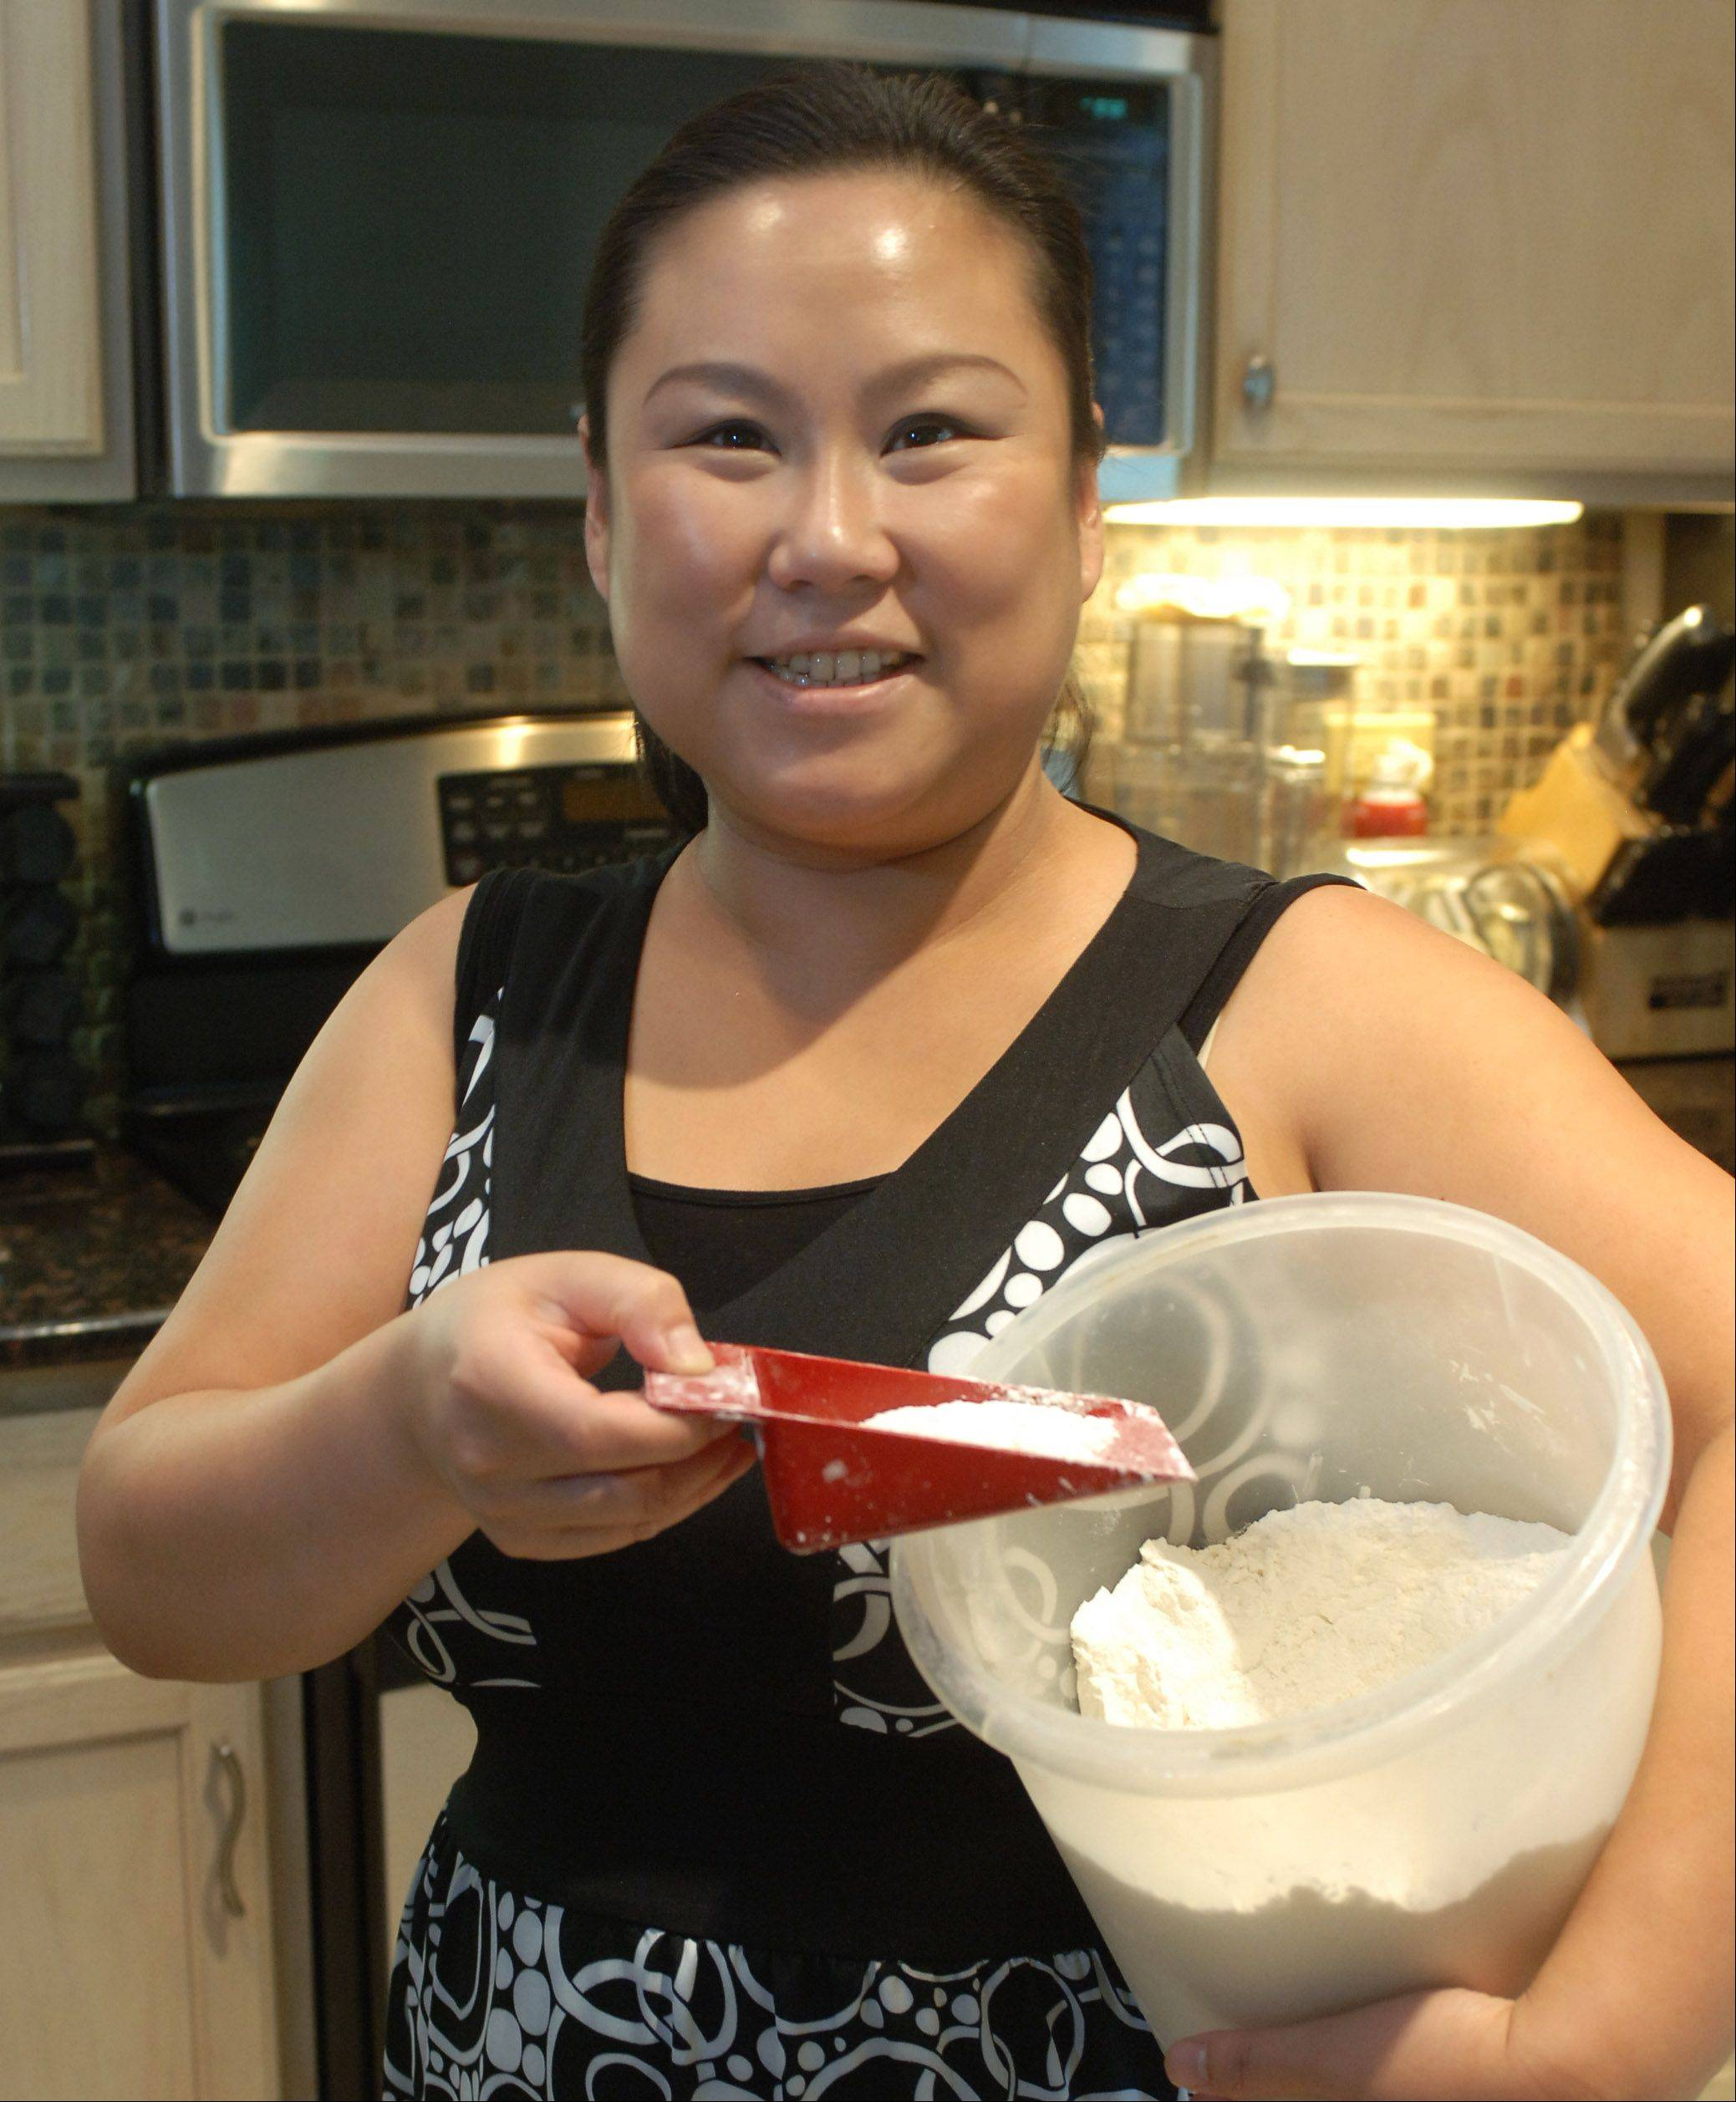 Paul Valade/pvalade@dailyherald.comCook of the Week challenger Sarah K. Lee of Round Lake. Flour is her favorite item.